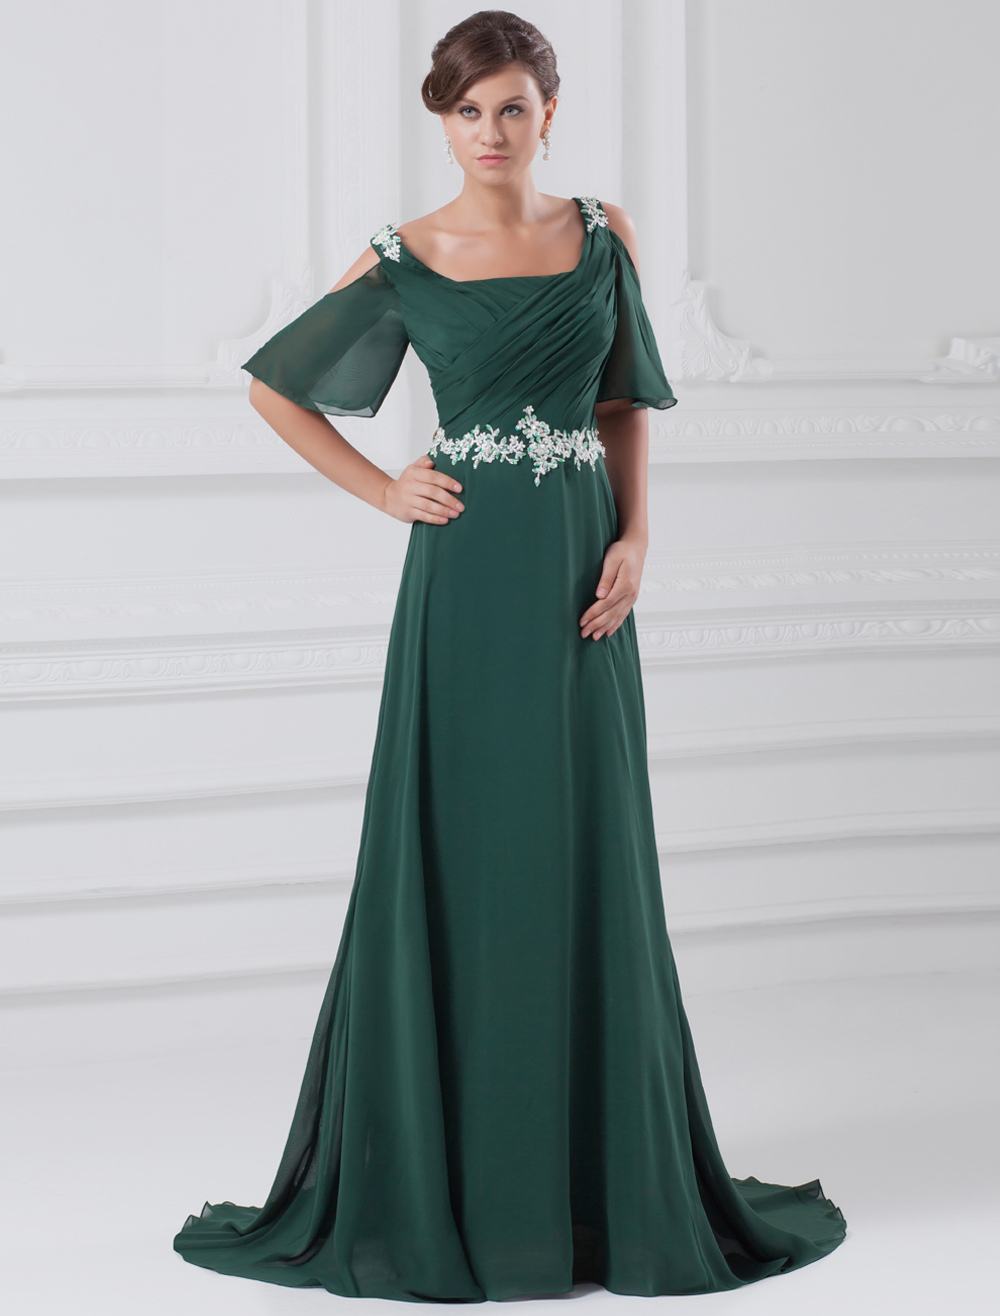 Dark Green Chiffon Evening Dress with Off-The-Shoulder Neck